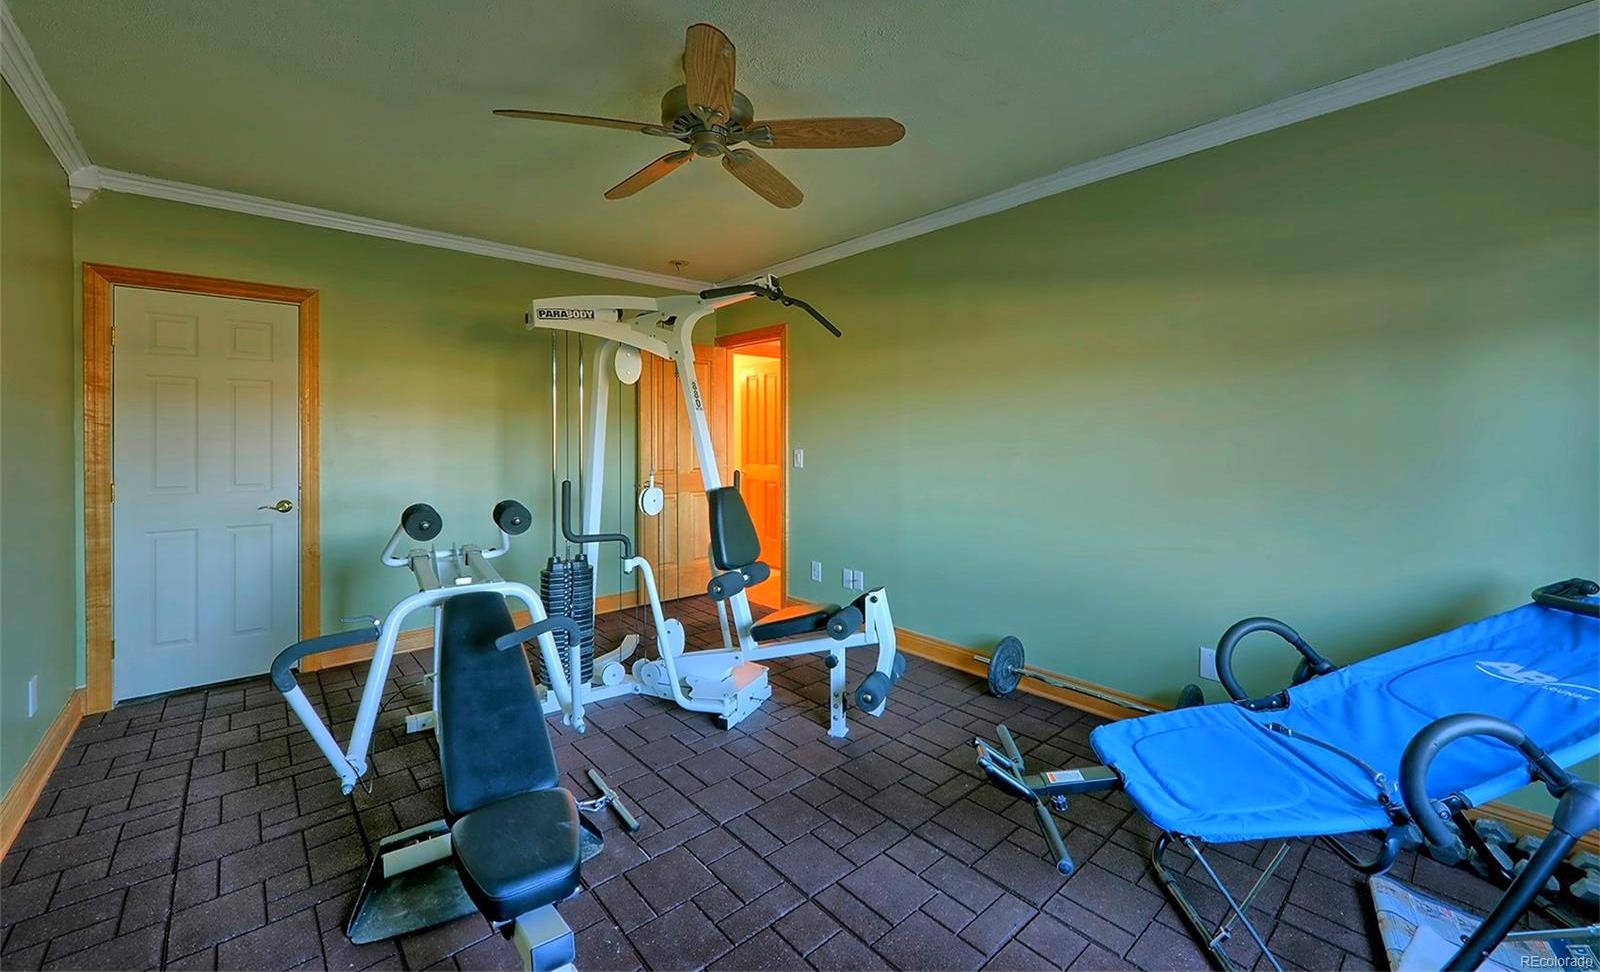 WORKOUT OR BEDROOM IN LOWER LEVEL